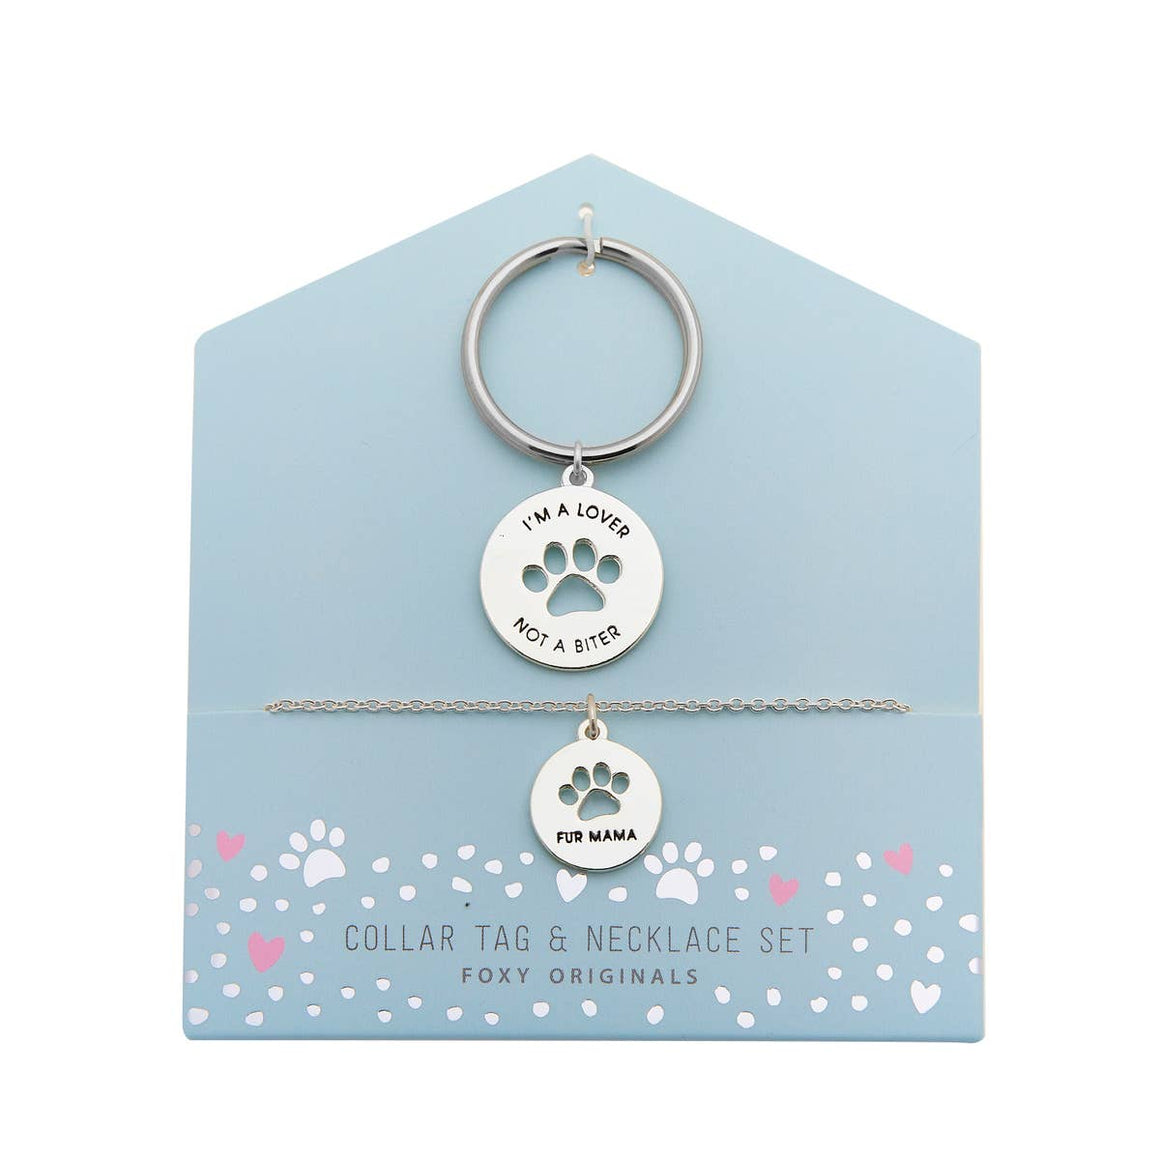 Woof & Whiskers - Fur Mama Necklace And Collar Tag